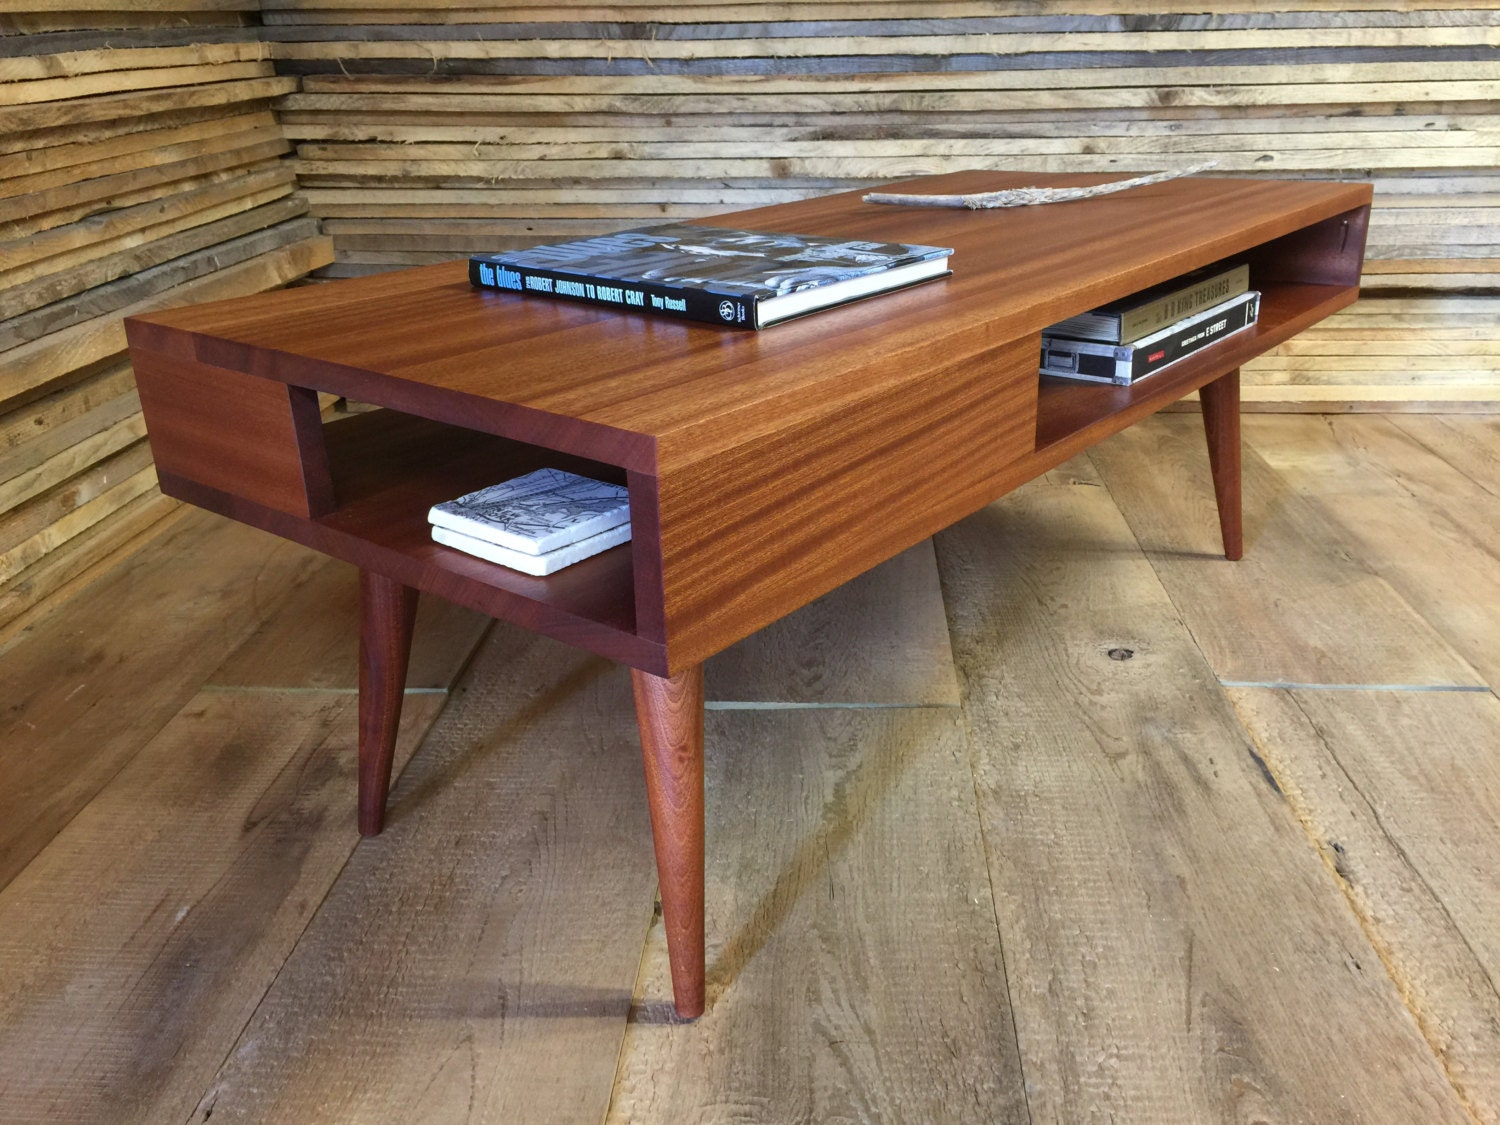 Thin man mid century modern coffee table with storage for Mid century modern coffee table